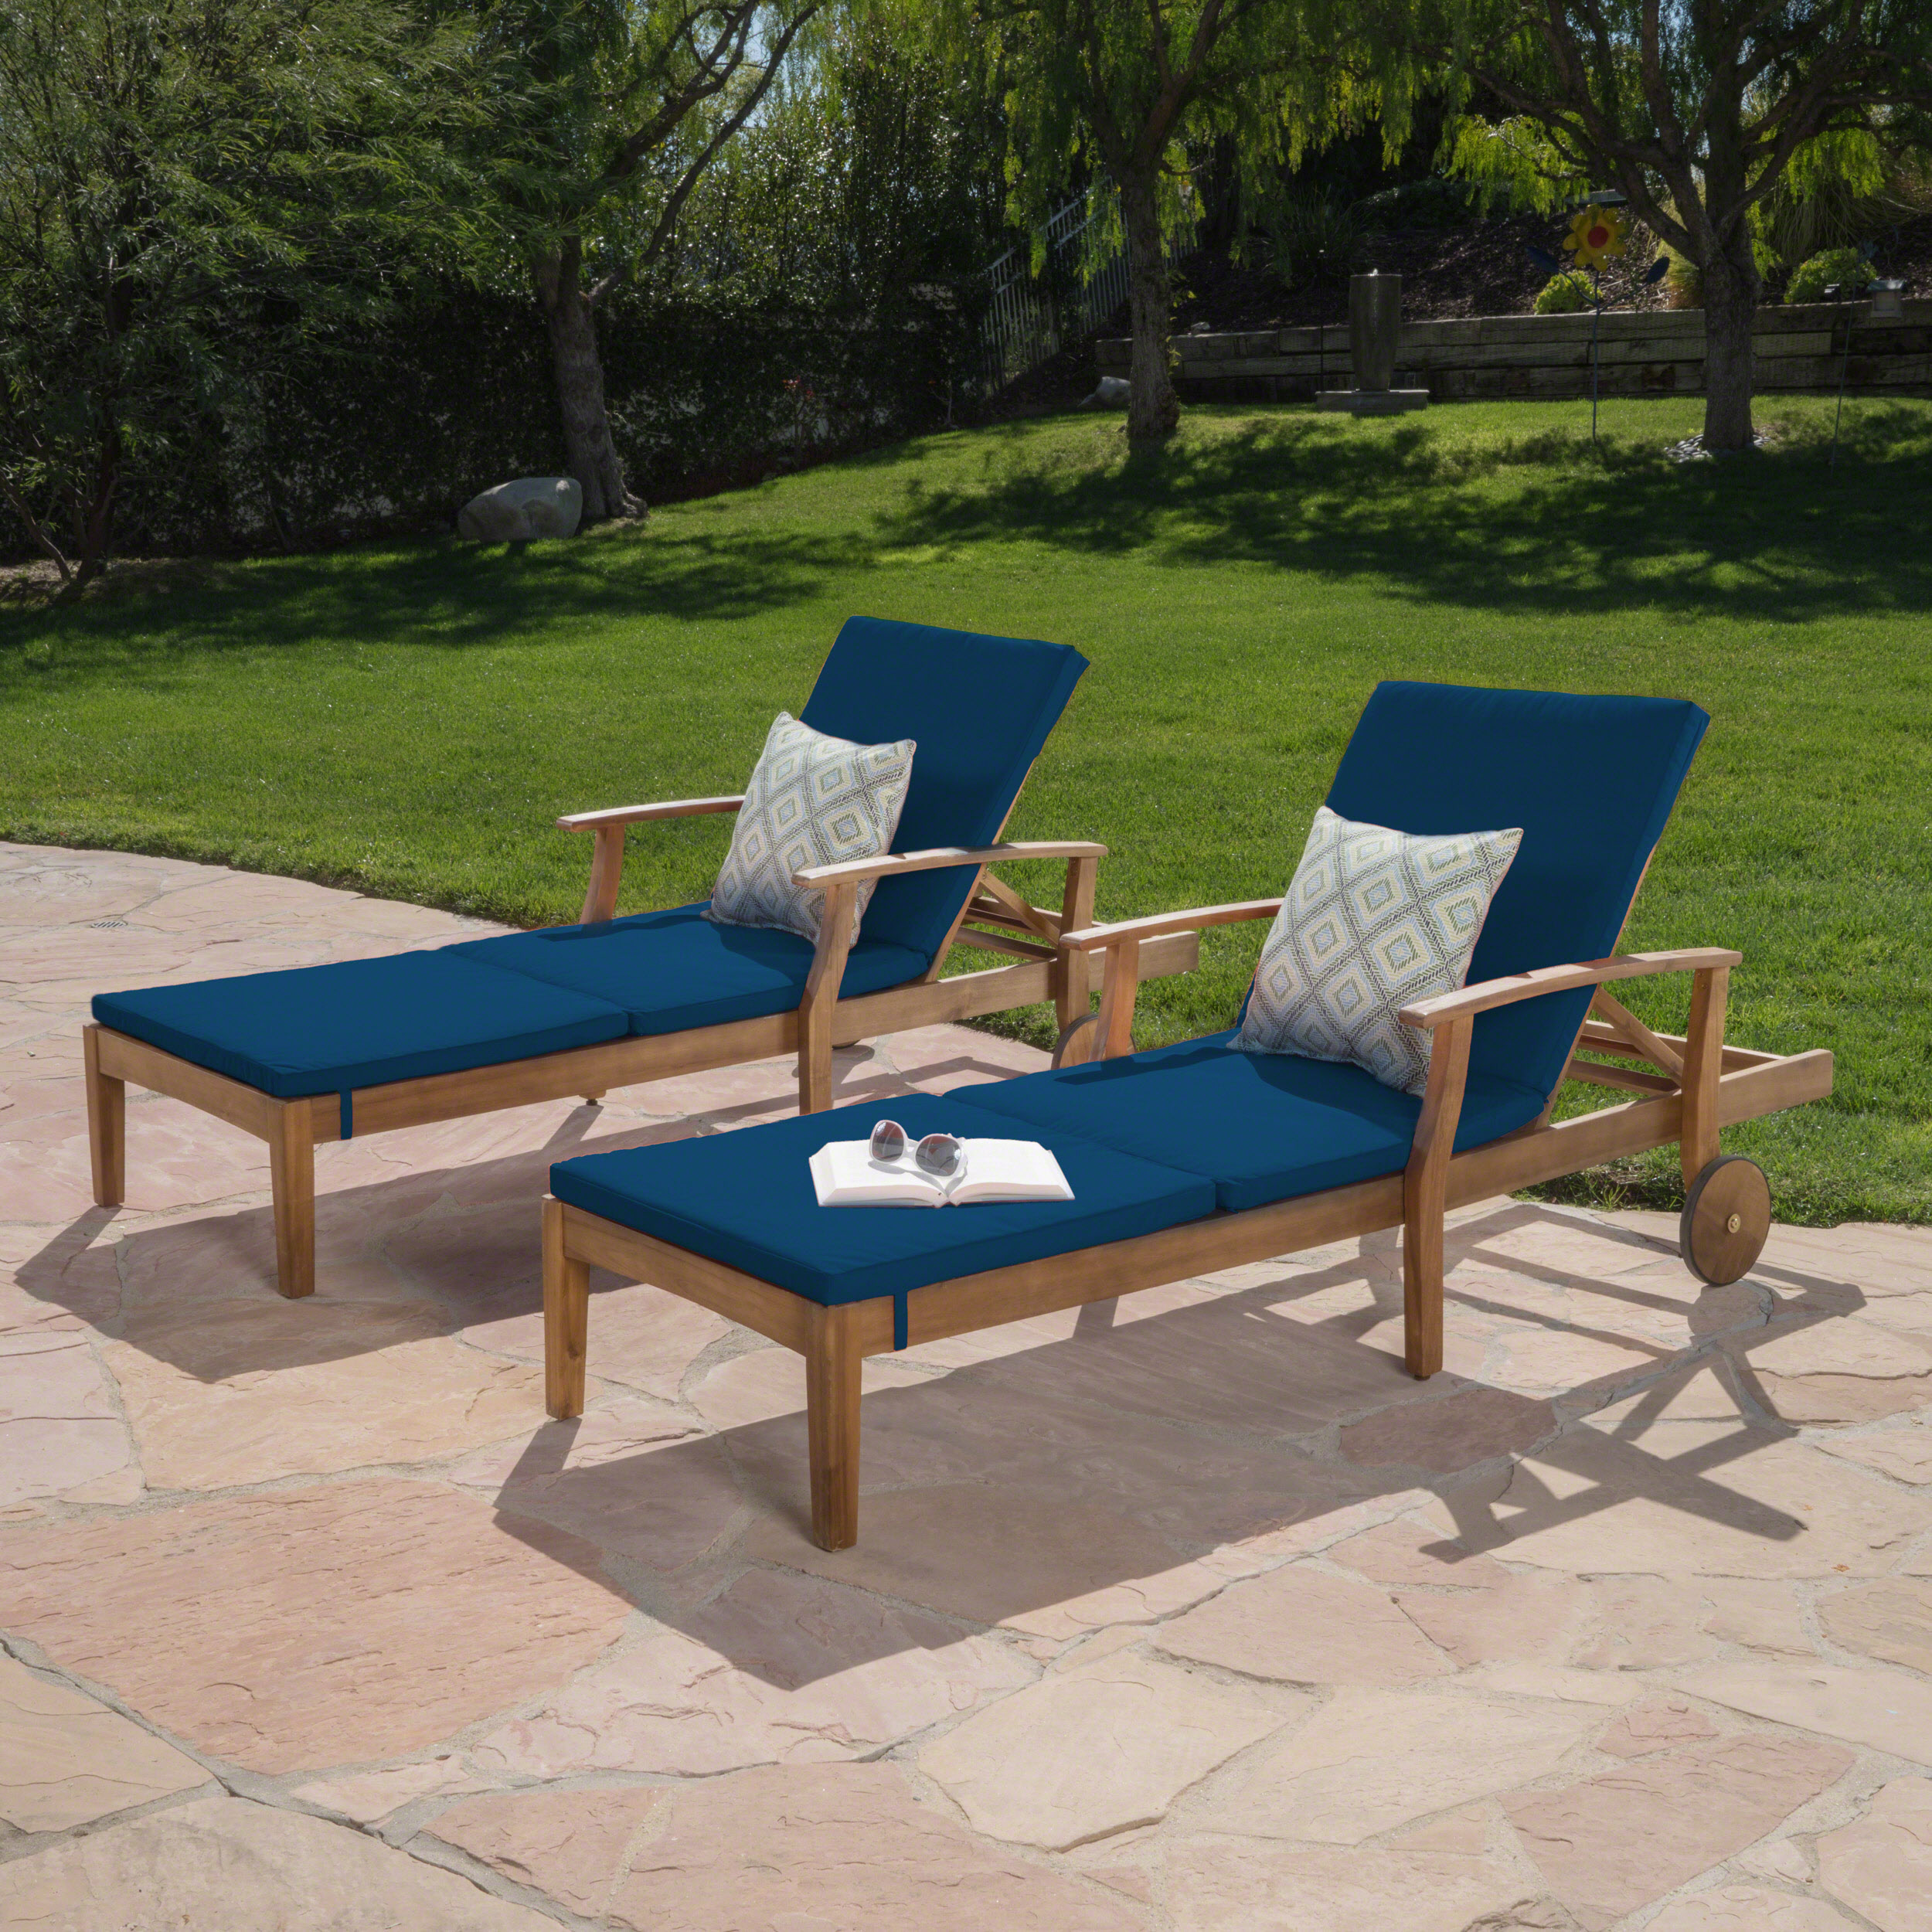 Daisy Outdoor Chaise Lounge with Water Resistant Cushion, Set of 2, Teak Finish and Blue